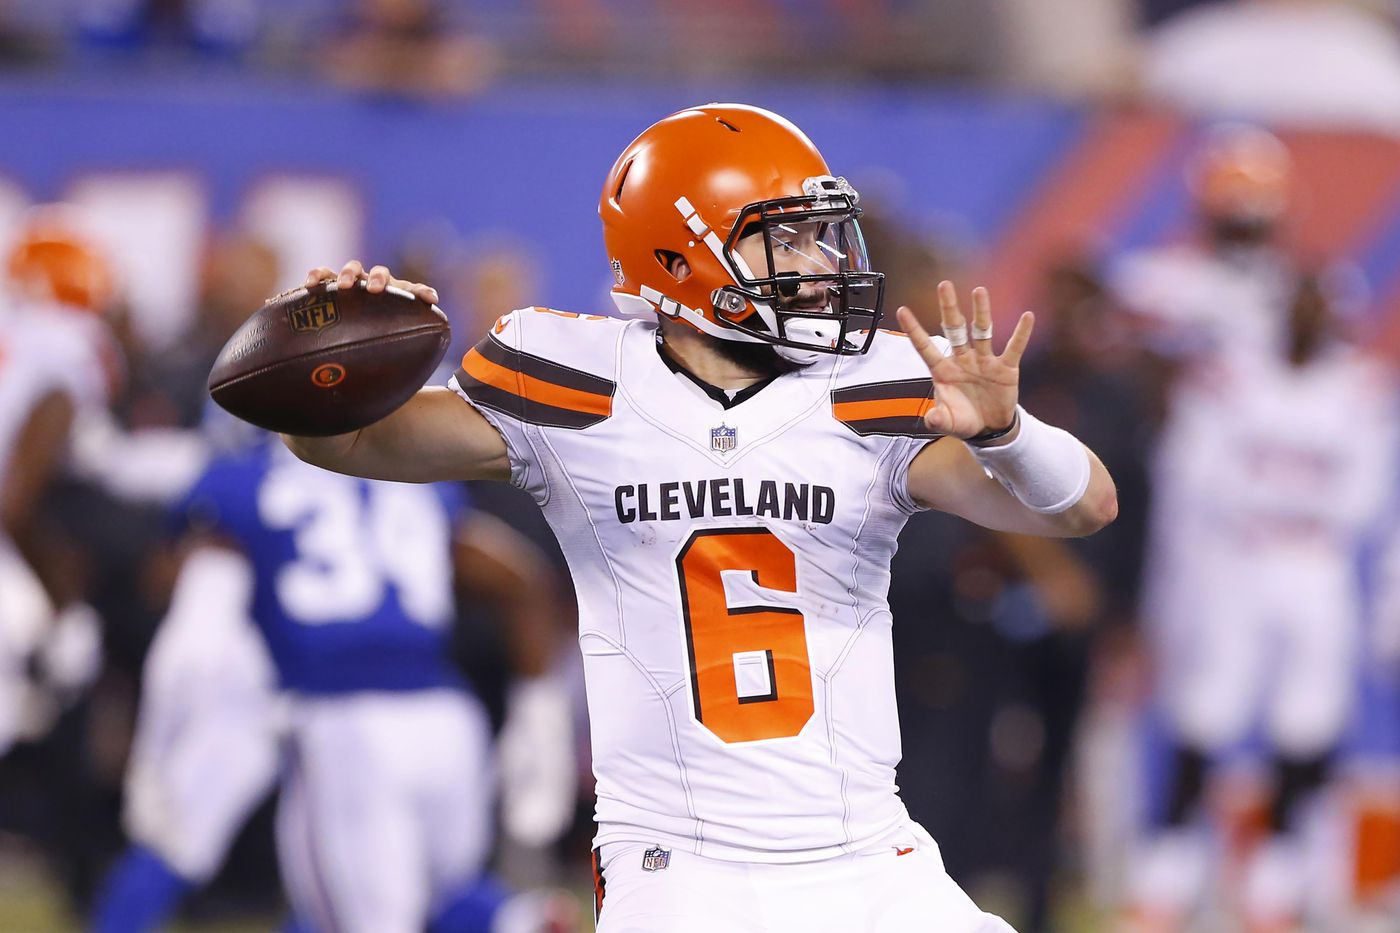 Oklahoma Football: Reactions to Baker Mayfield's first NFL ...